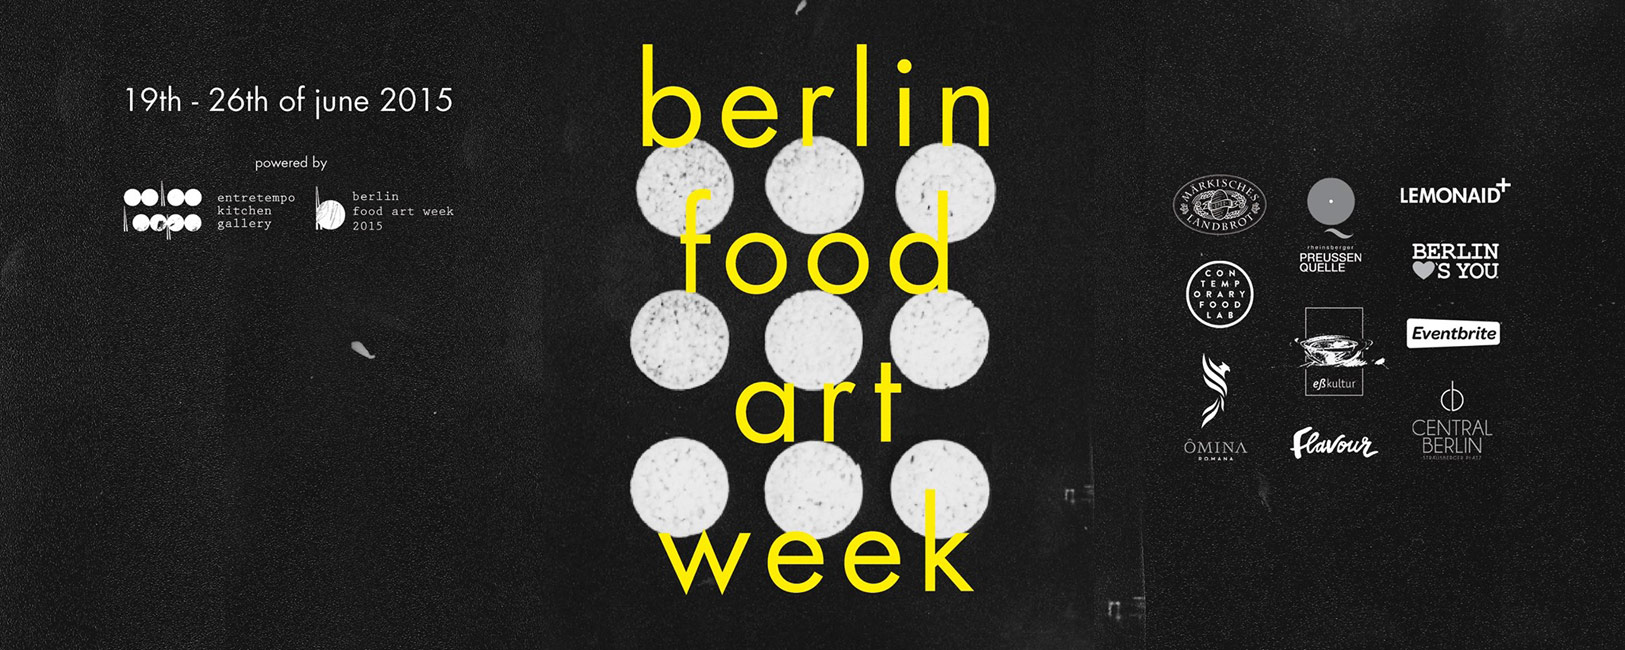 Berlin Food Art Week 2015  © Maycec